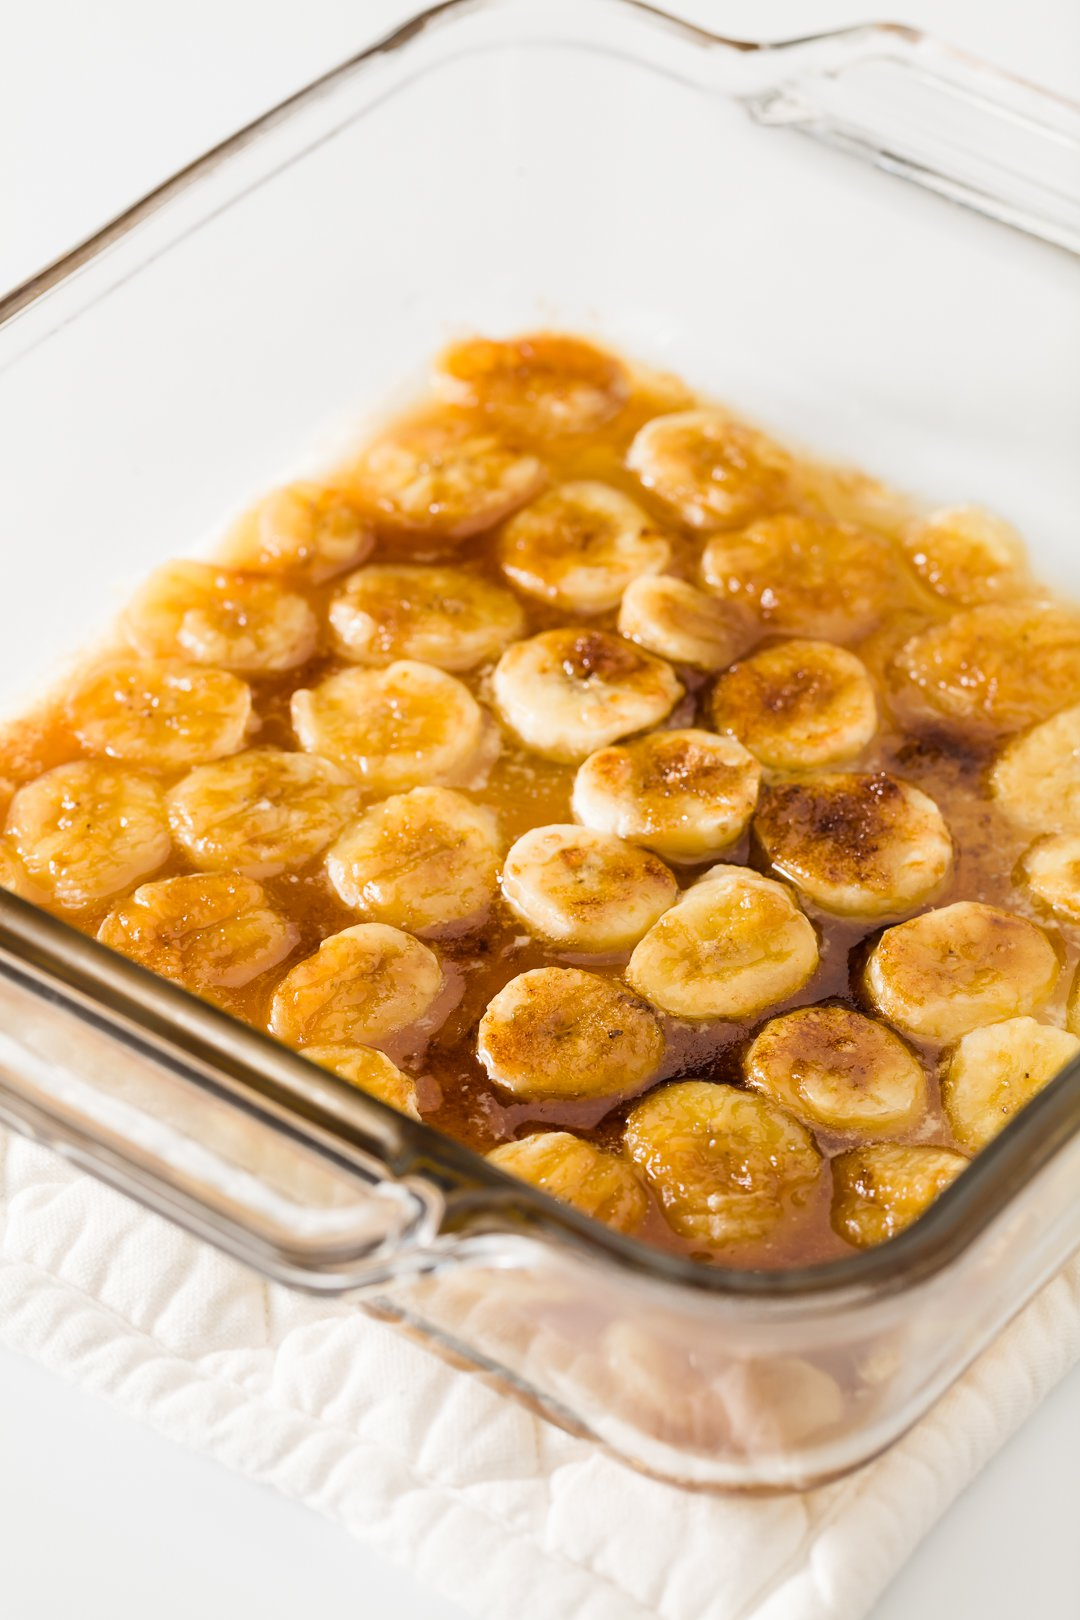 Caramelized Bananas in the Microwave